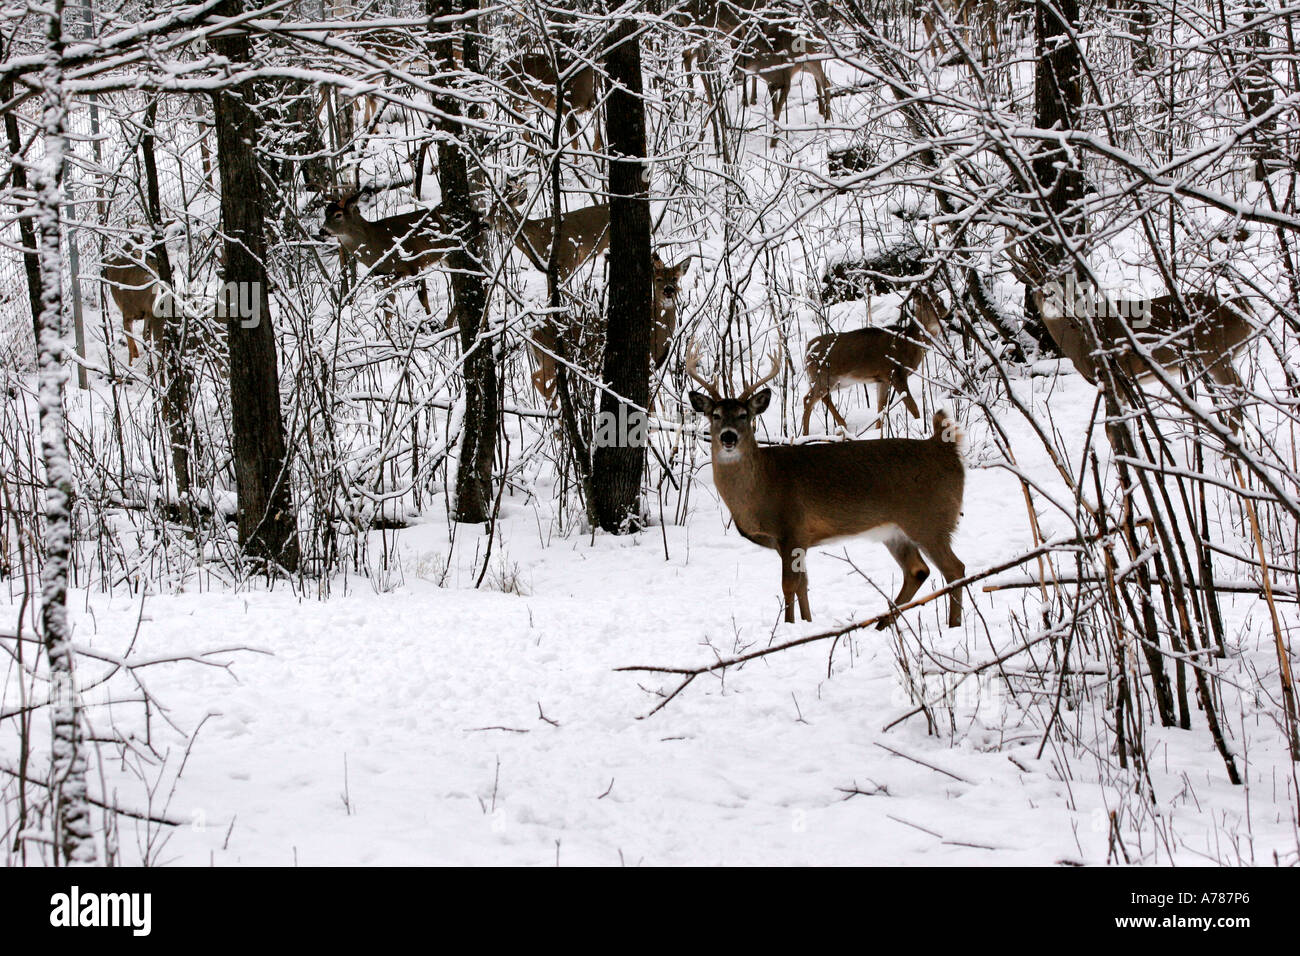 Herd of White Tail Deer found in Northern Wisconsin and Minnesota - Stock Image